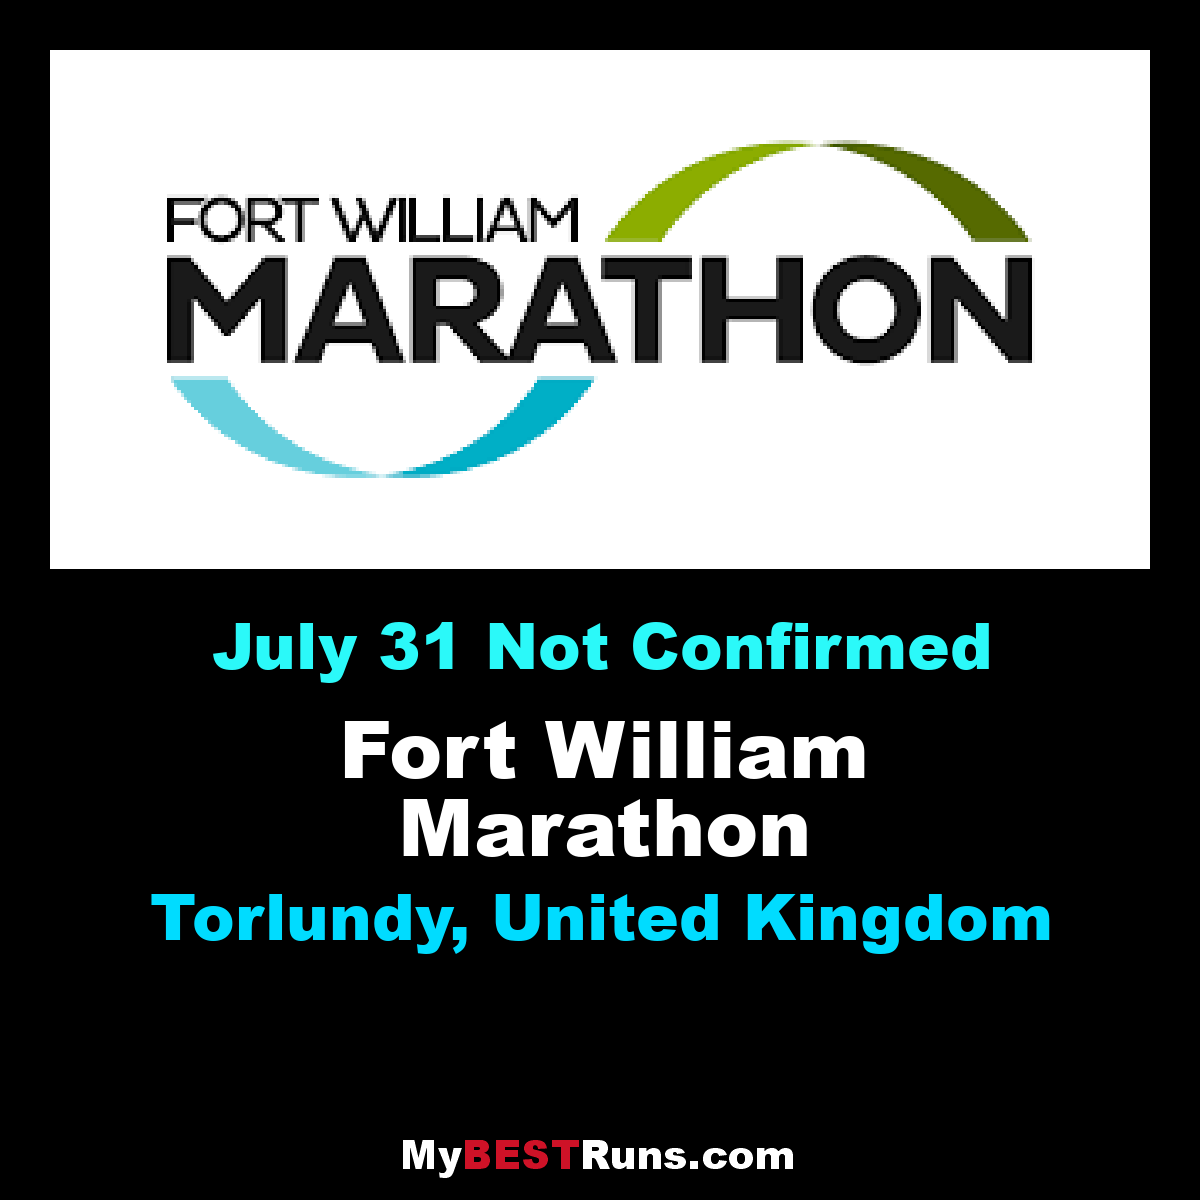 Fort William Marathon